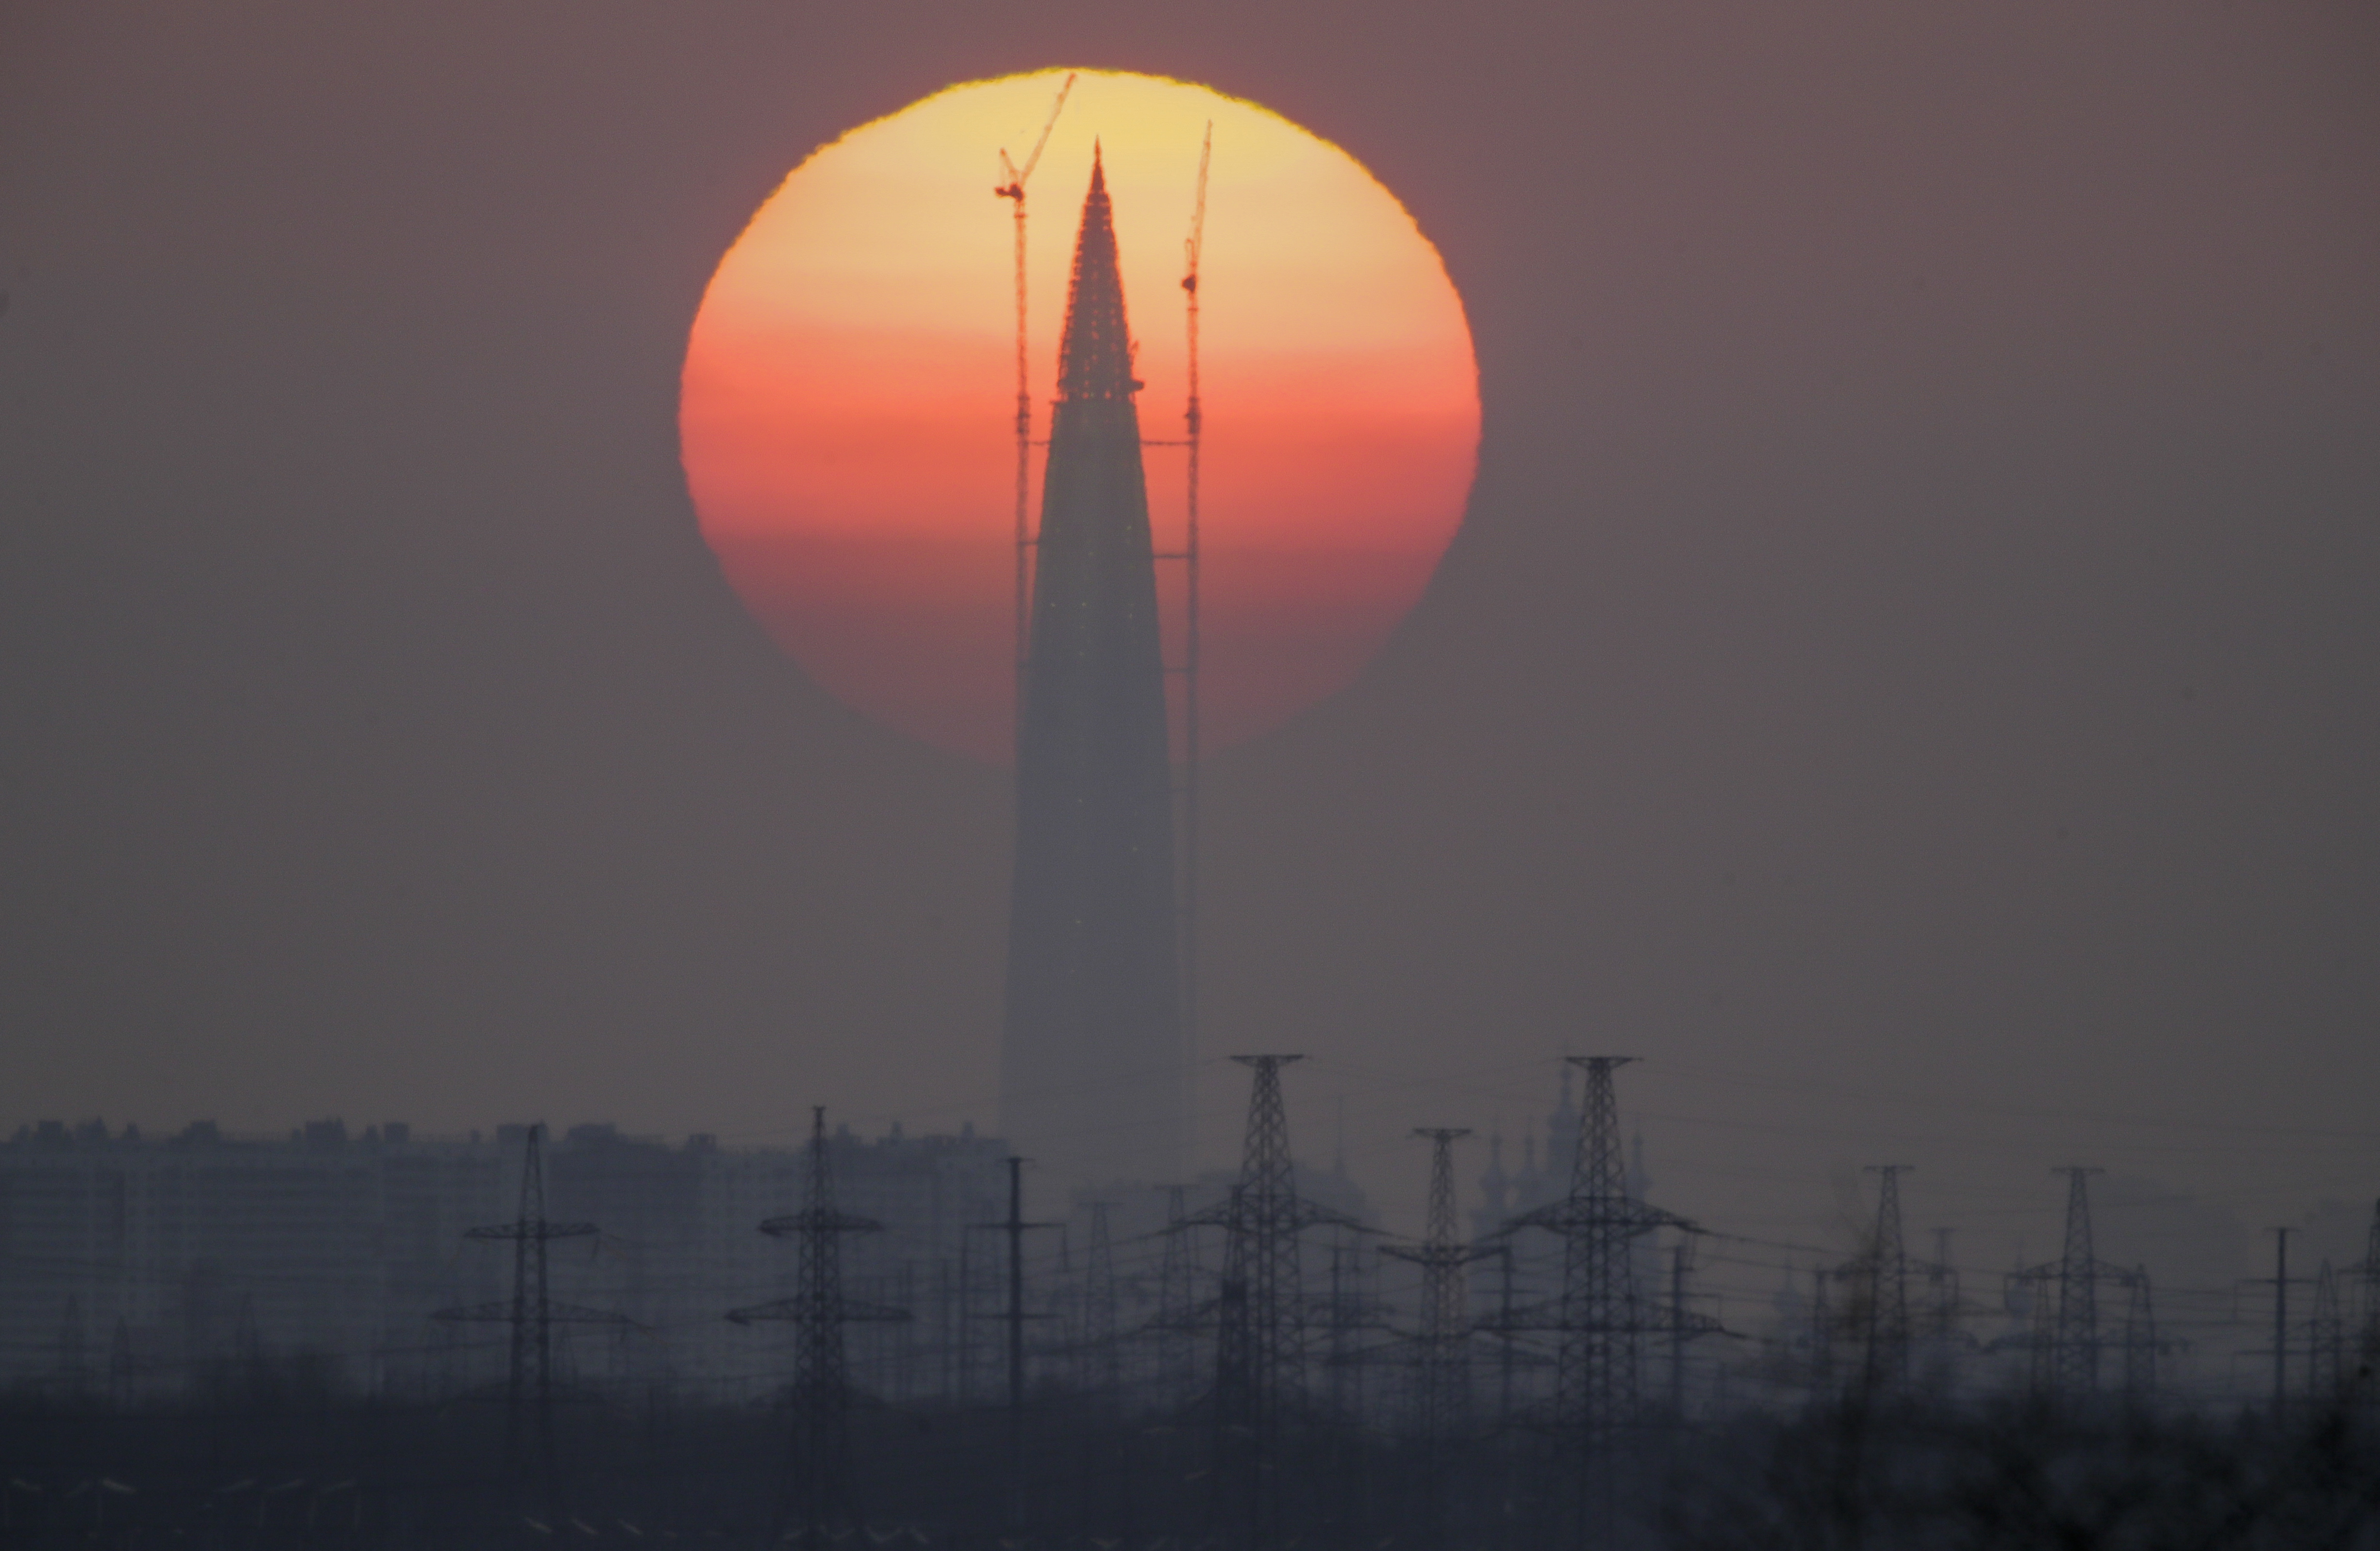 Business tower Lakhta Centre under construction, the headquarters of Russian gas monopoly Gazprom, is silhouetted against the sunset in St. Petersburg, Russia, Sunday, April 15, 2018. (AP Photo/Dmitri Lovetsky)